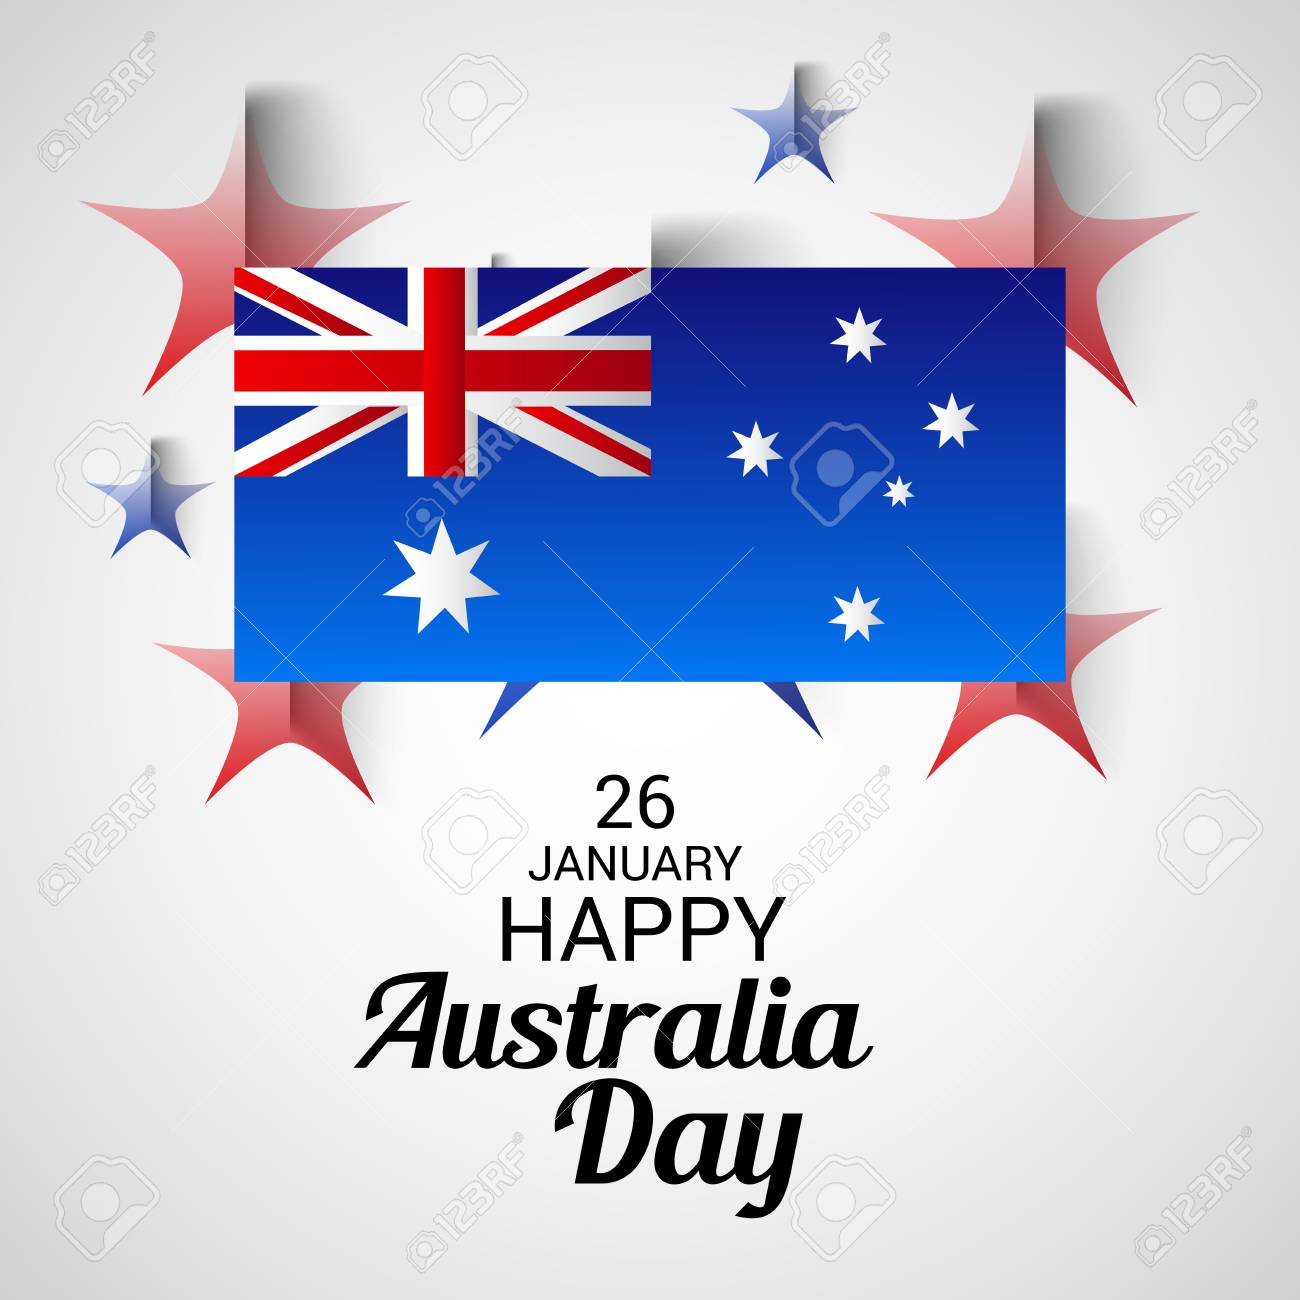 Happy australia day greeting card with australian flag design happy australia day greeting card with australian flag design stock vector 94132468 m4hsunfo